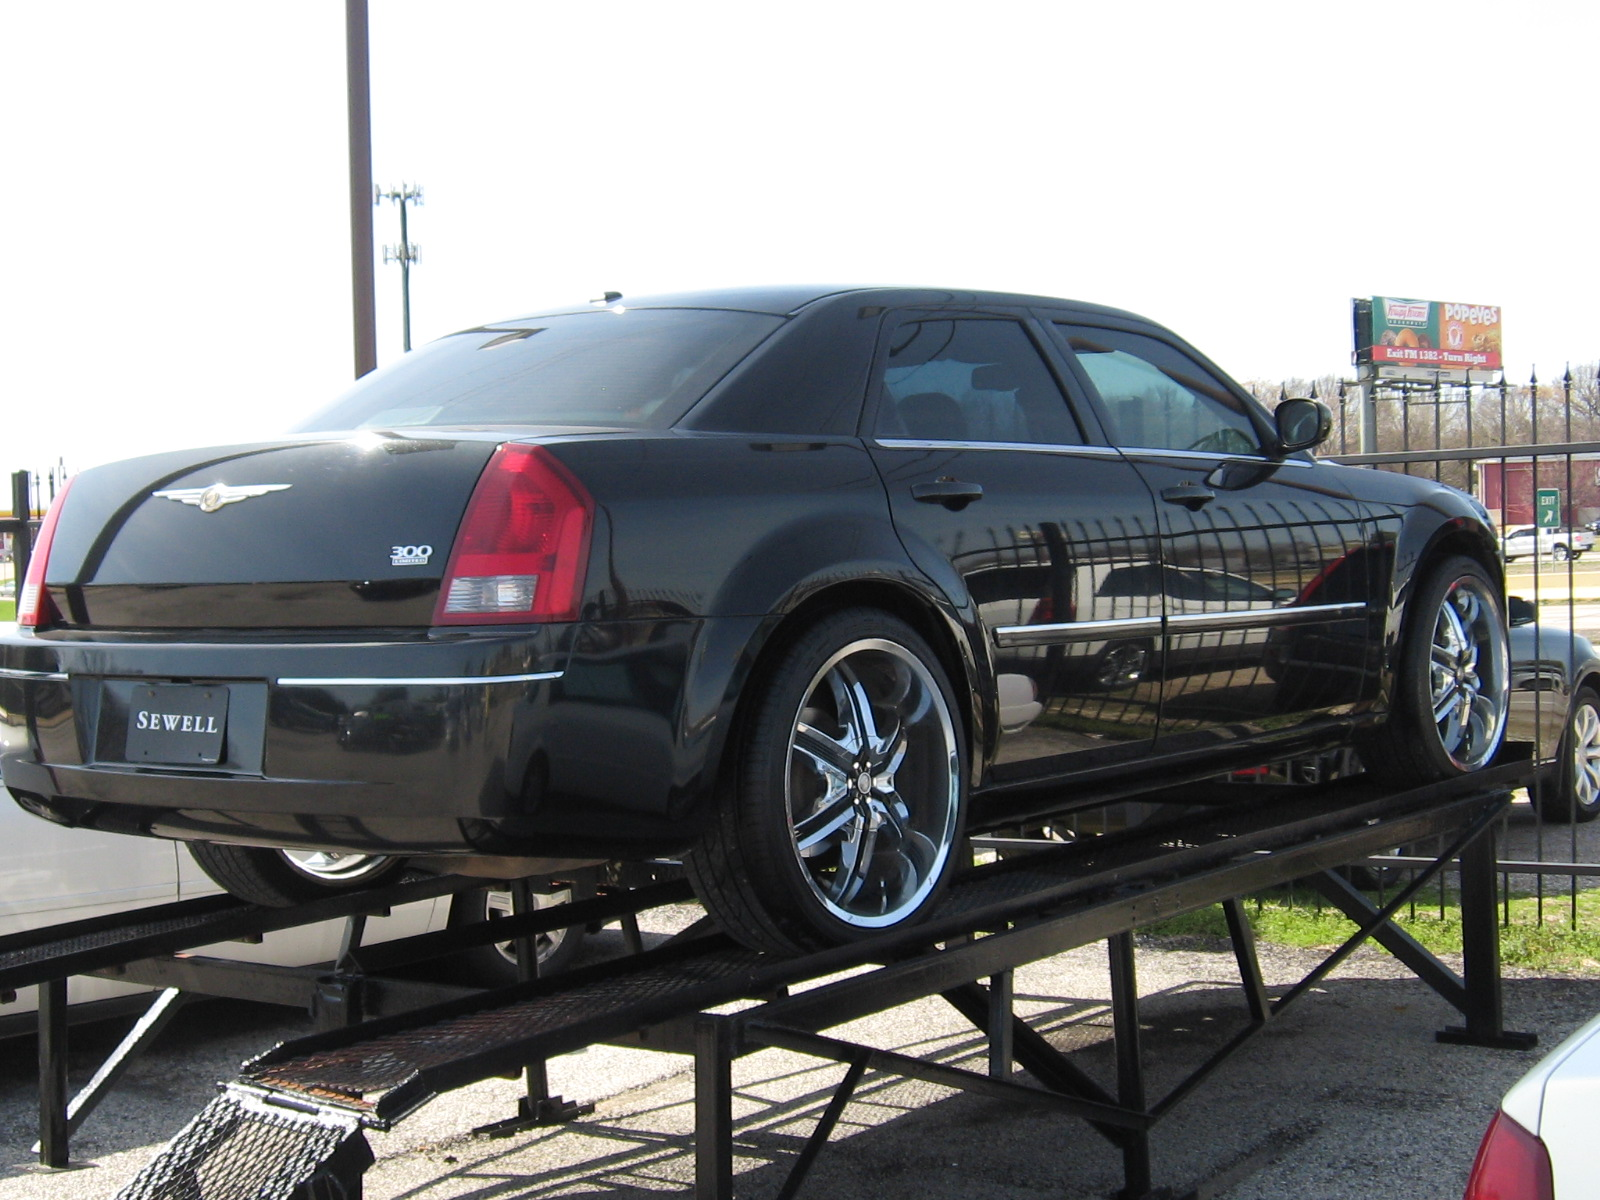 2007 Chrysler 300 Limited | Welcome to Autoworldtx